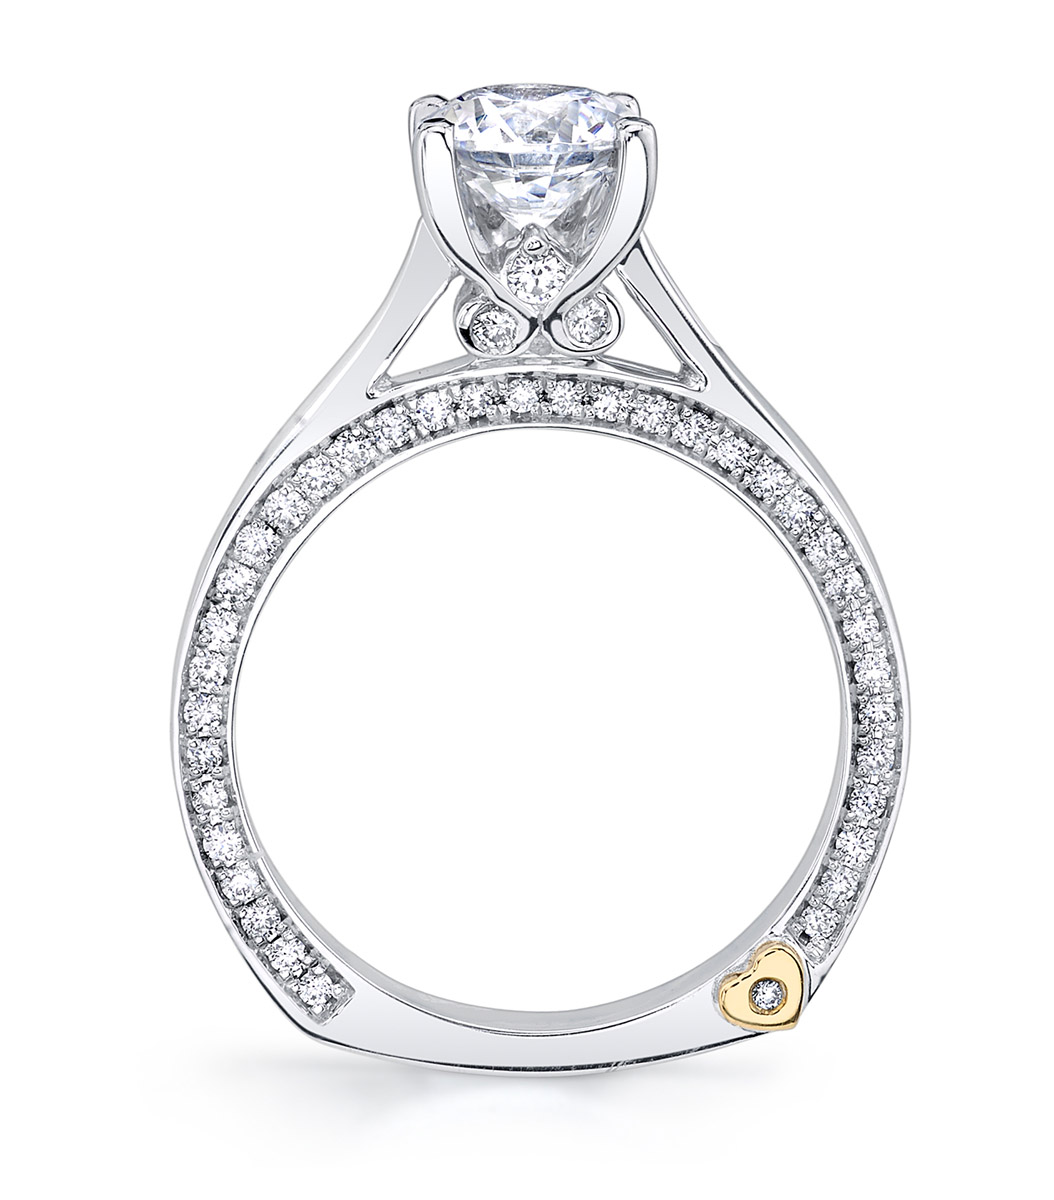 Mark Schneider : Crave Contemporary Engagement Ring - Top